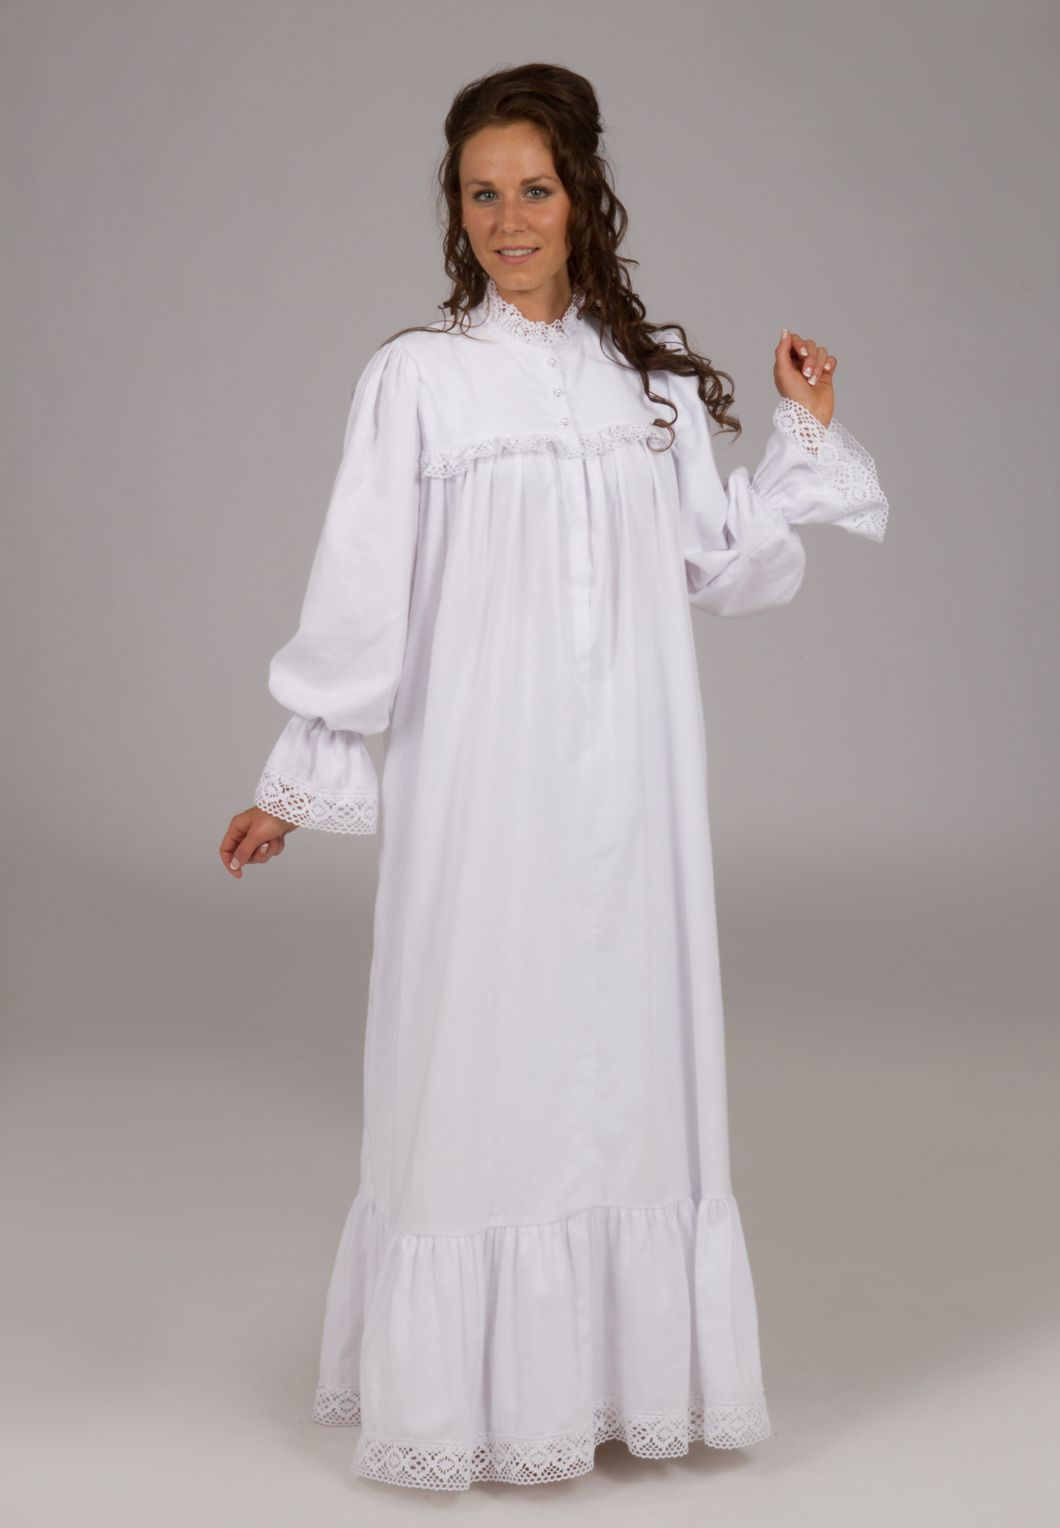 Peek into the past with this item from Recollections. Vintage Nightgown 4e54f7b6a